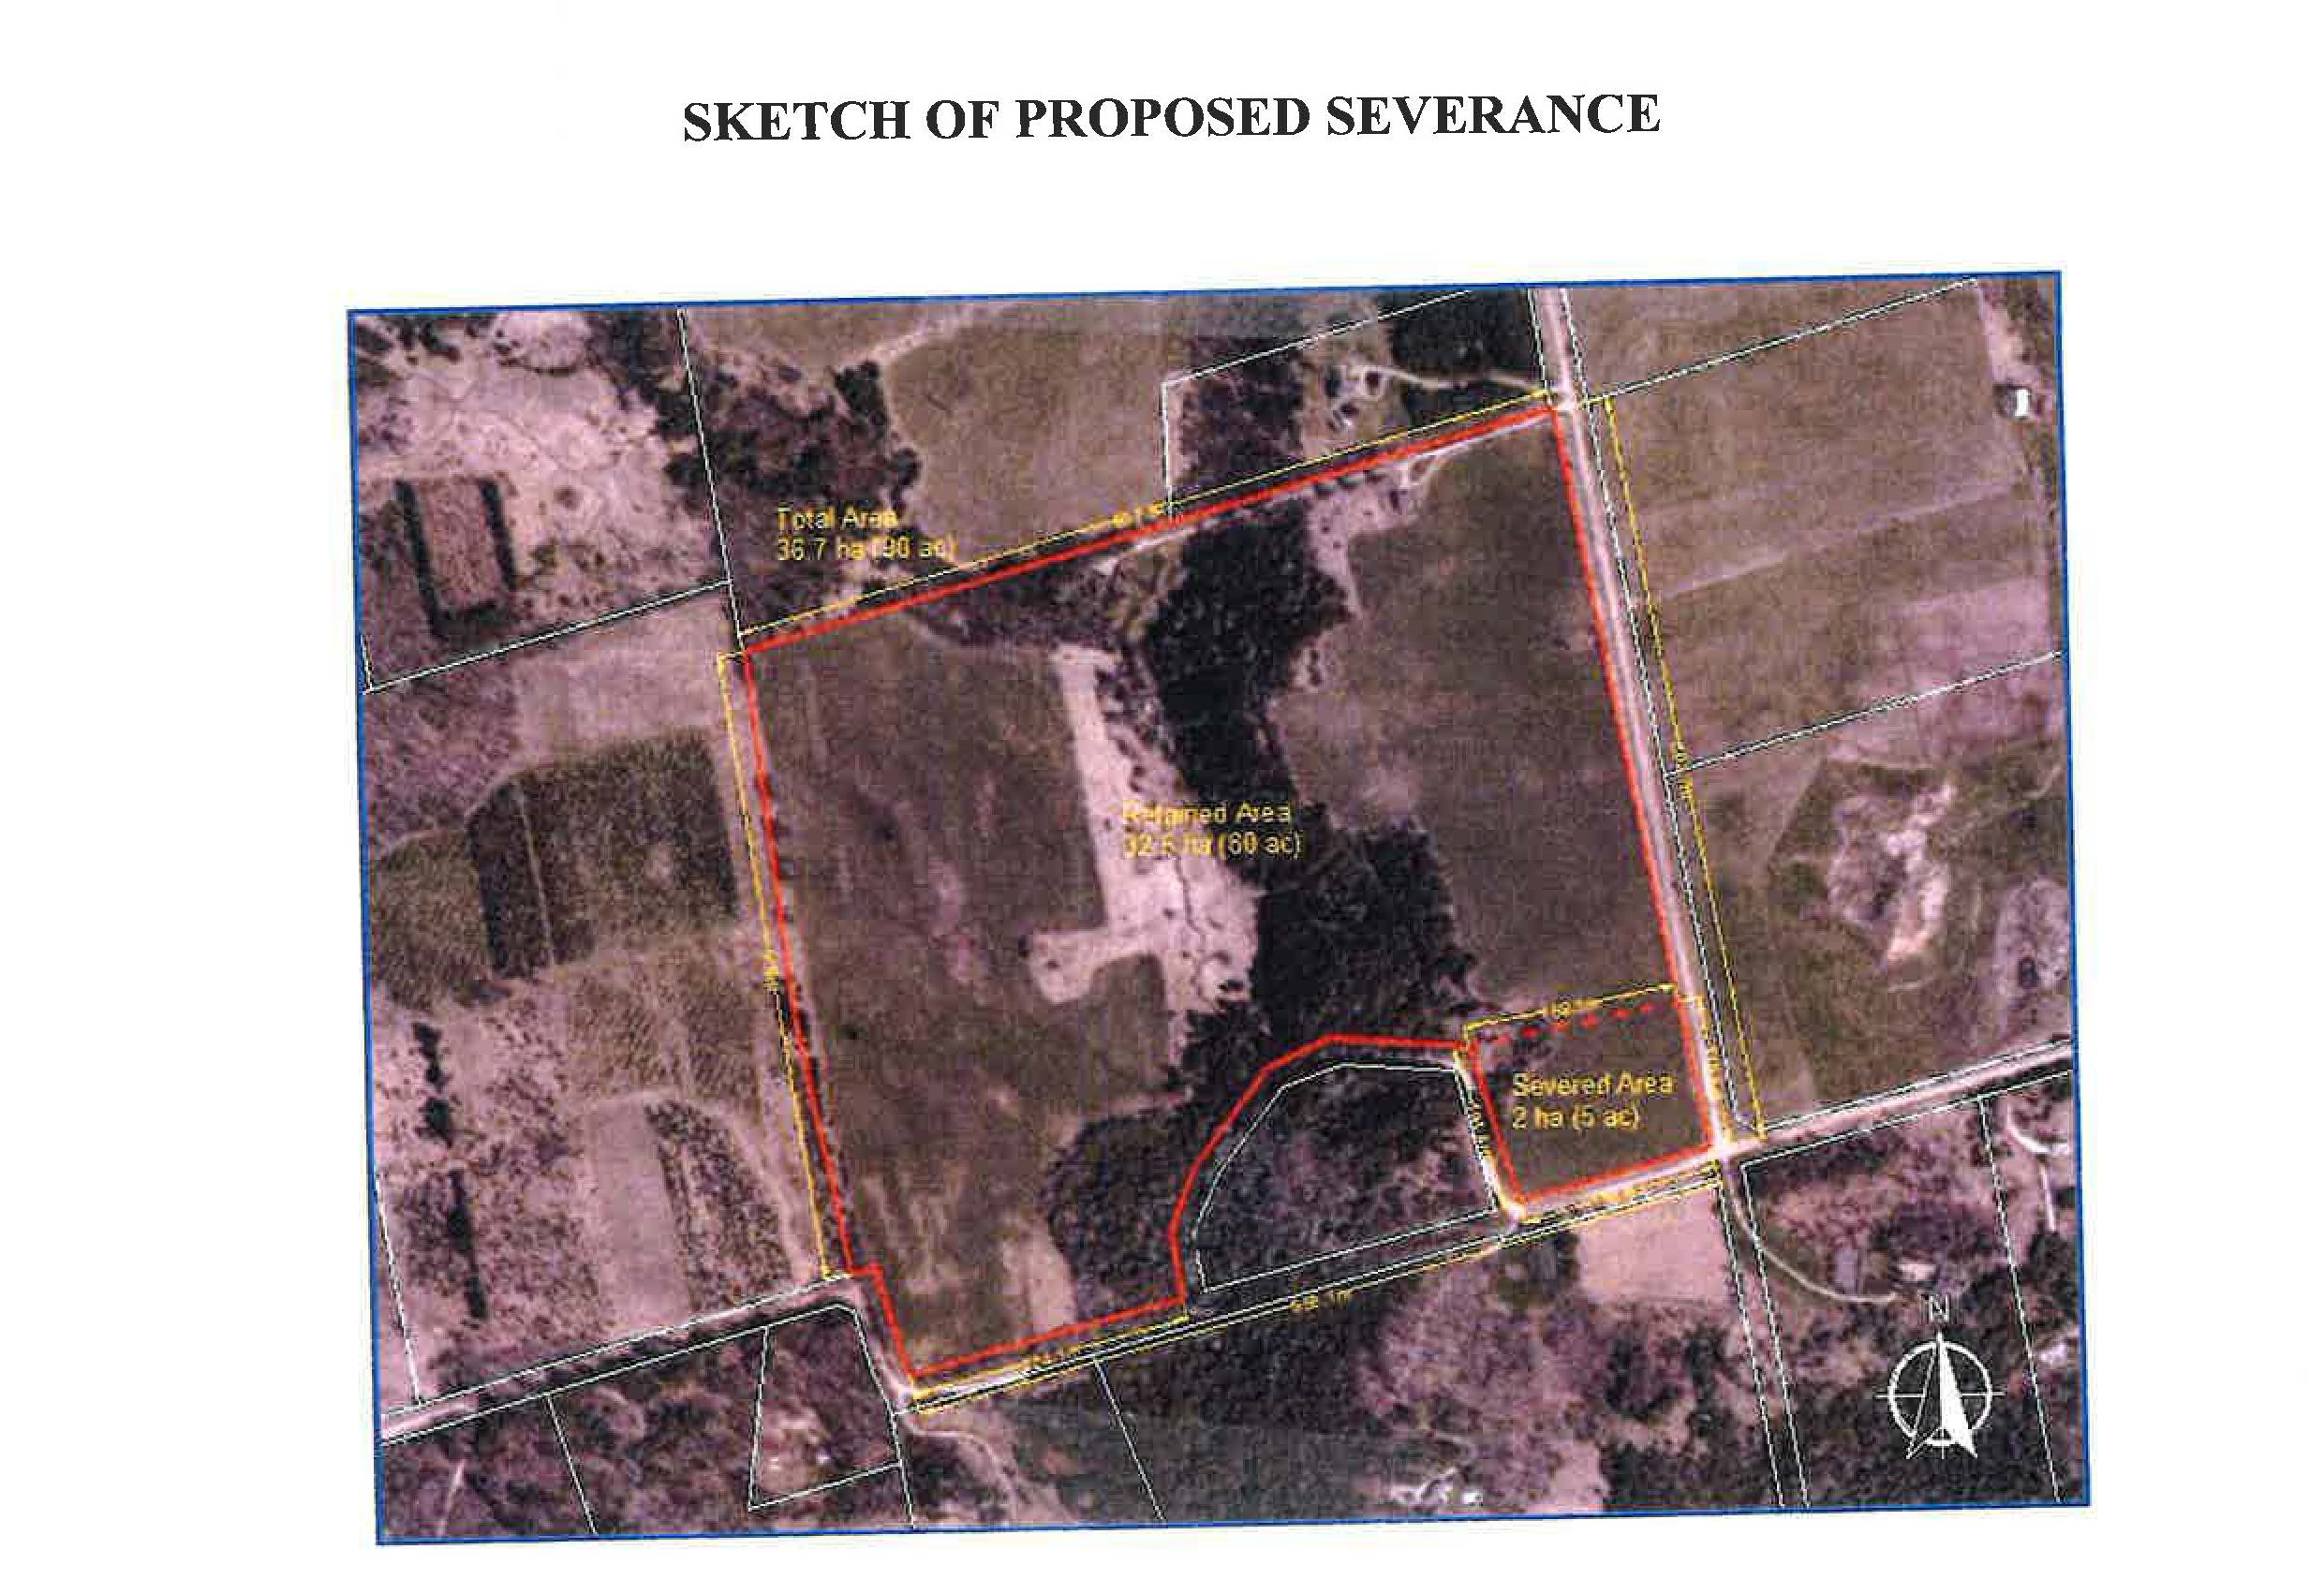 Sketch of Proposed Severance for Part of Easat Half of Lot 26 Concession 7 EHS 955360 7th Line EHS